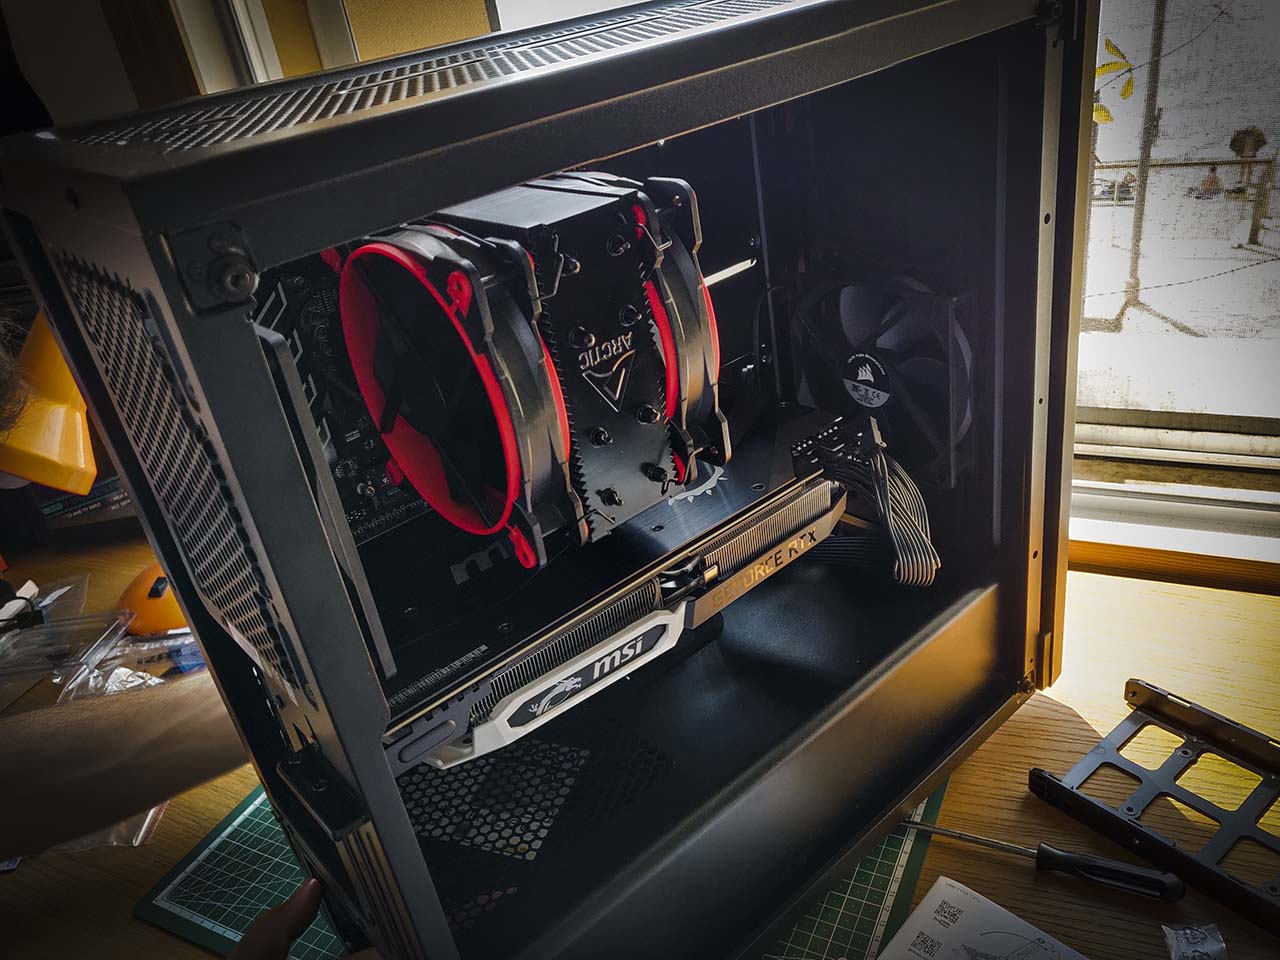 The CPU cooler and the graphic card in evidence on the left side of the case